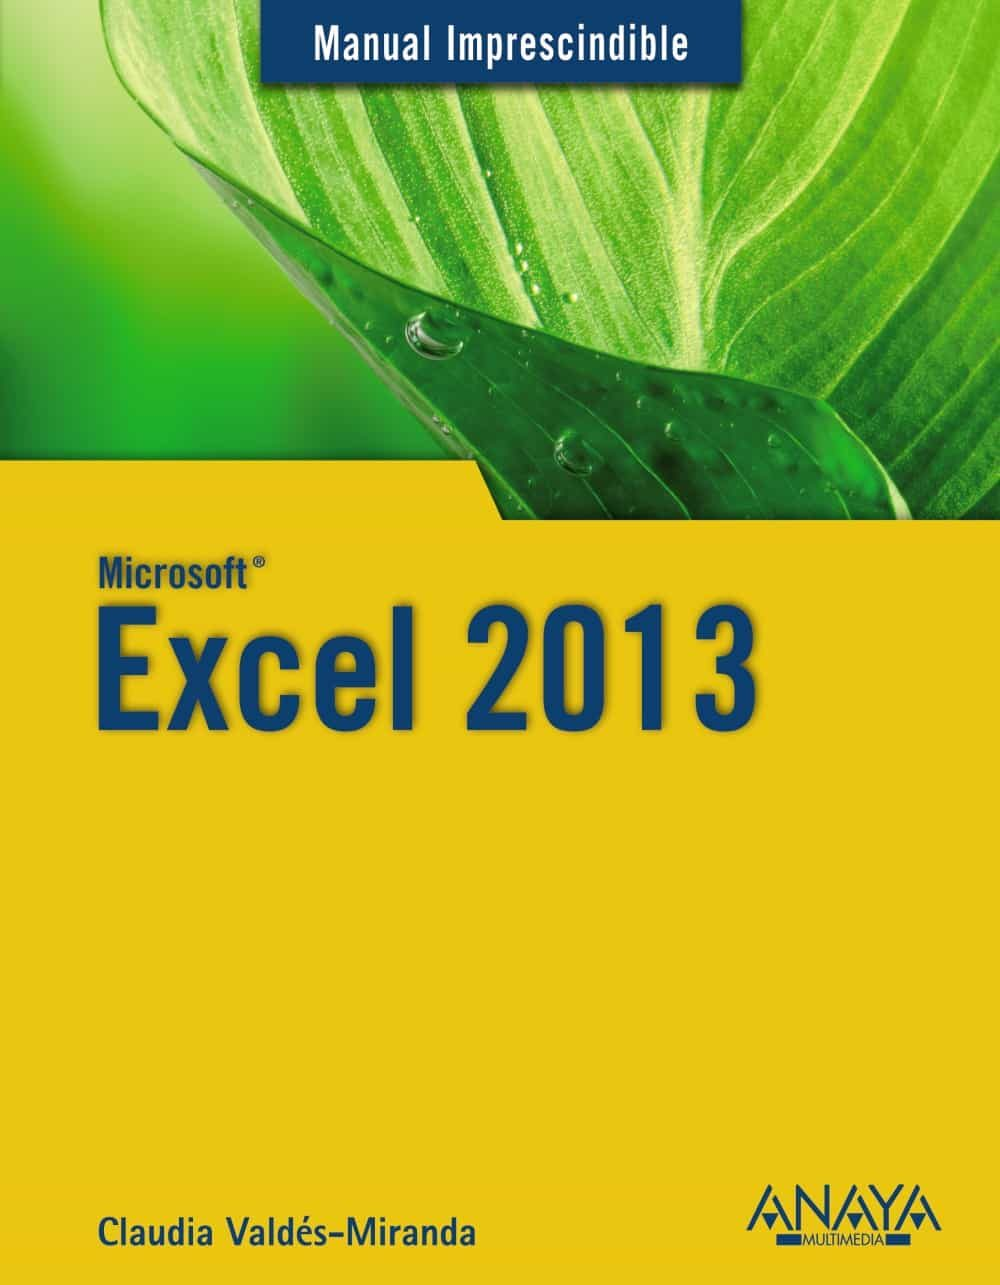 microsoft excel 2013 manual